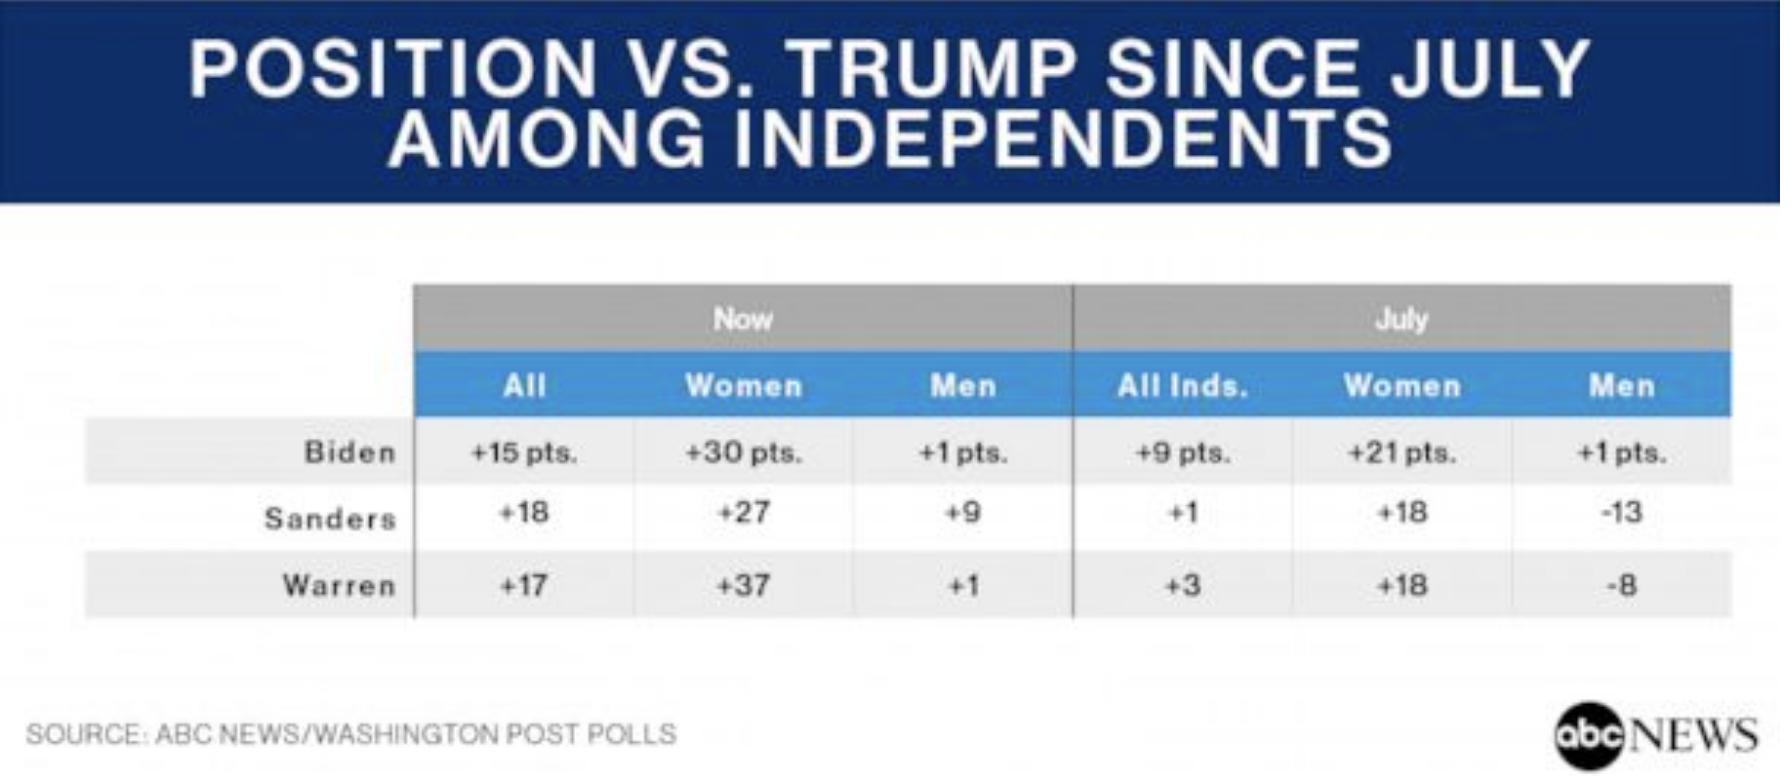 Screen-Shot-2019-11-05-at-9.11.29-AM Tuesday Morning 2020 Poll Gets Trump's Twitter Fingers Going Crime Domestic Policy Donald Trump Economy Election 2016 Election 2020 Featured Foreign Policy Hillary Clinton Impeachment Investigation Mueller National Security Politics Polls Religion Russia Top Stories